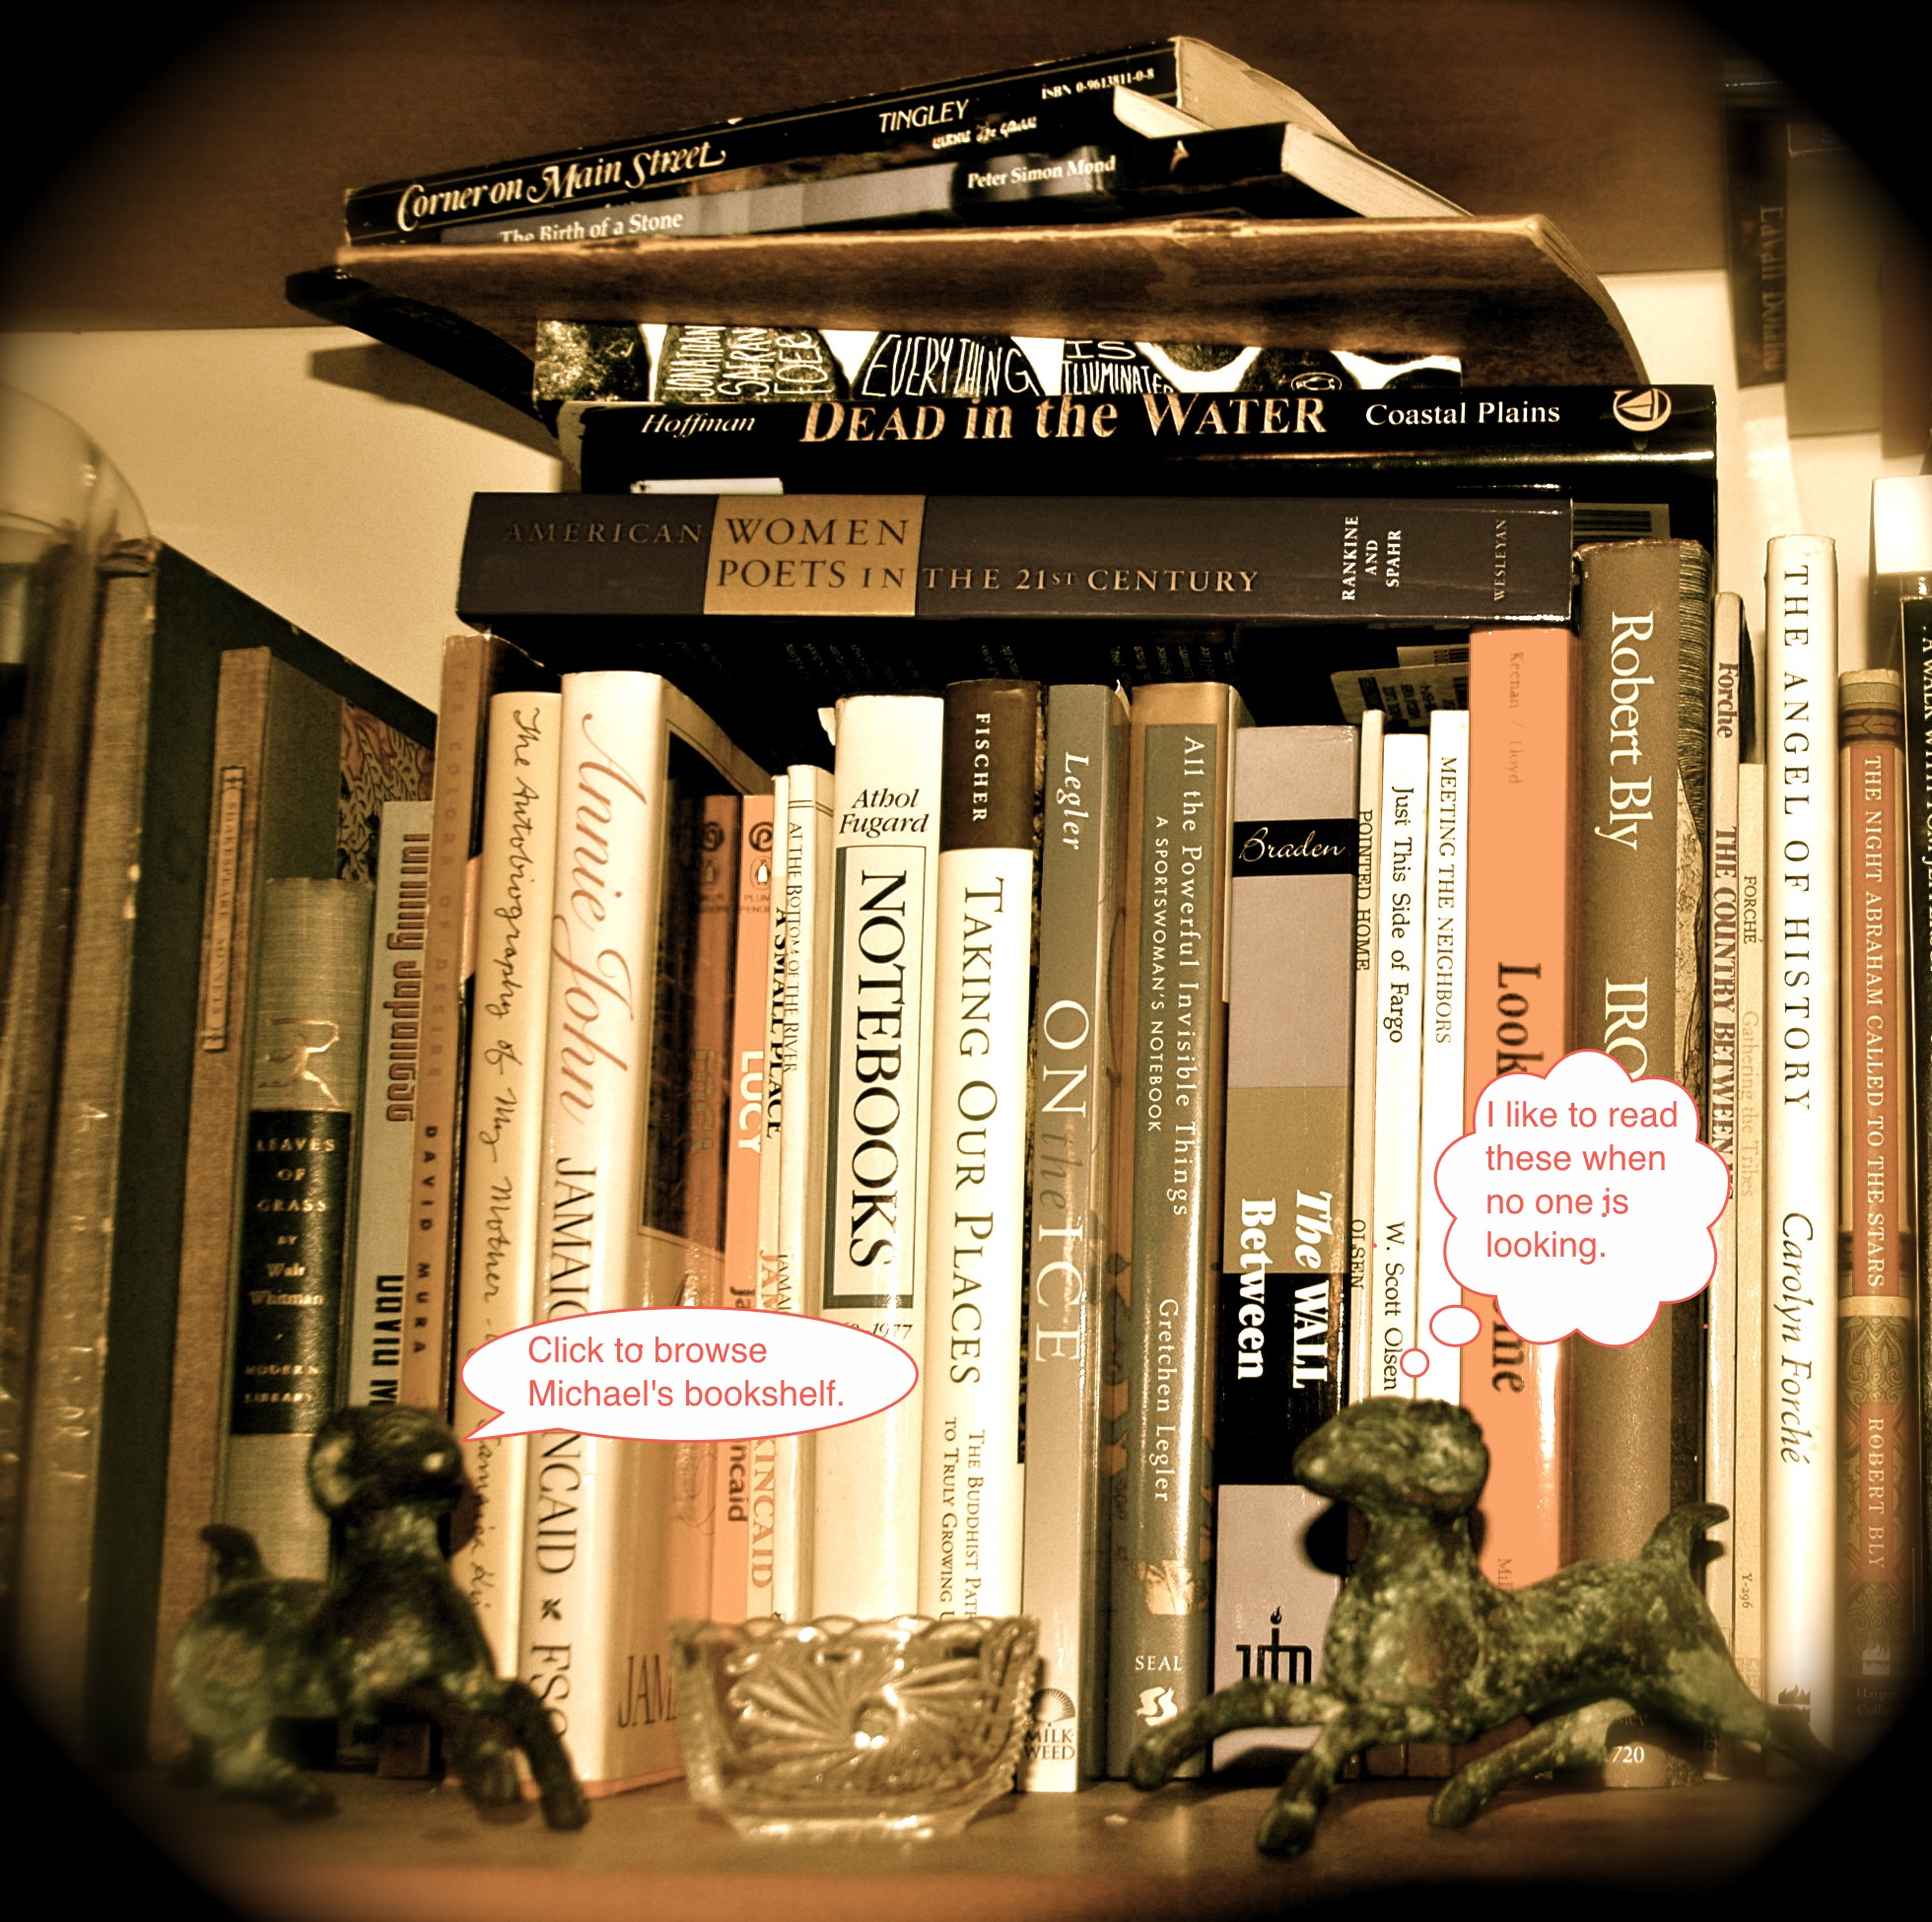 Image of Michael Dickel's bookshelf